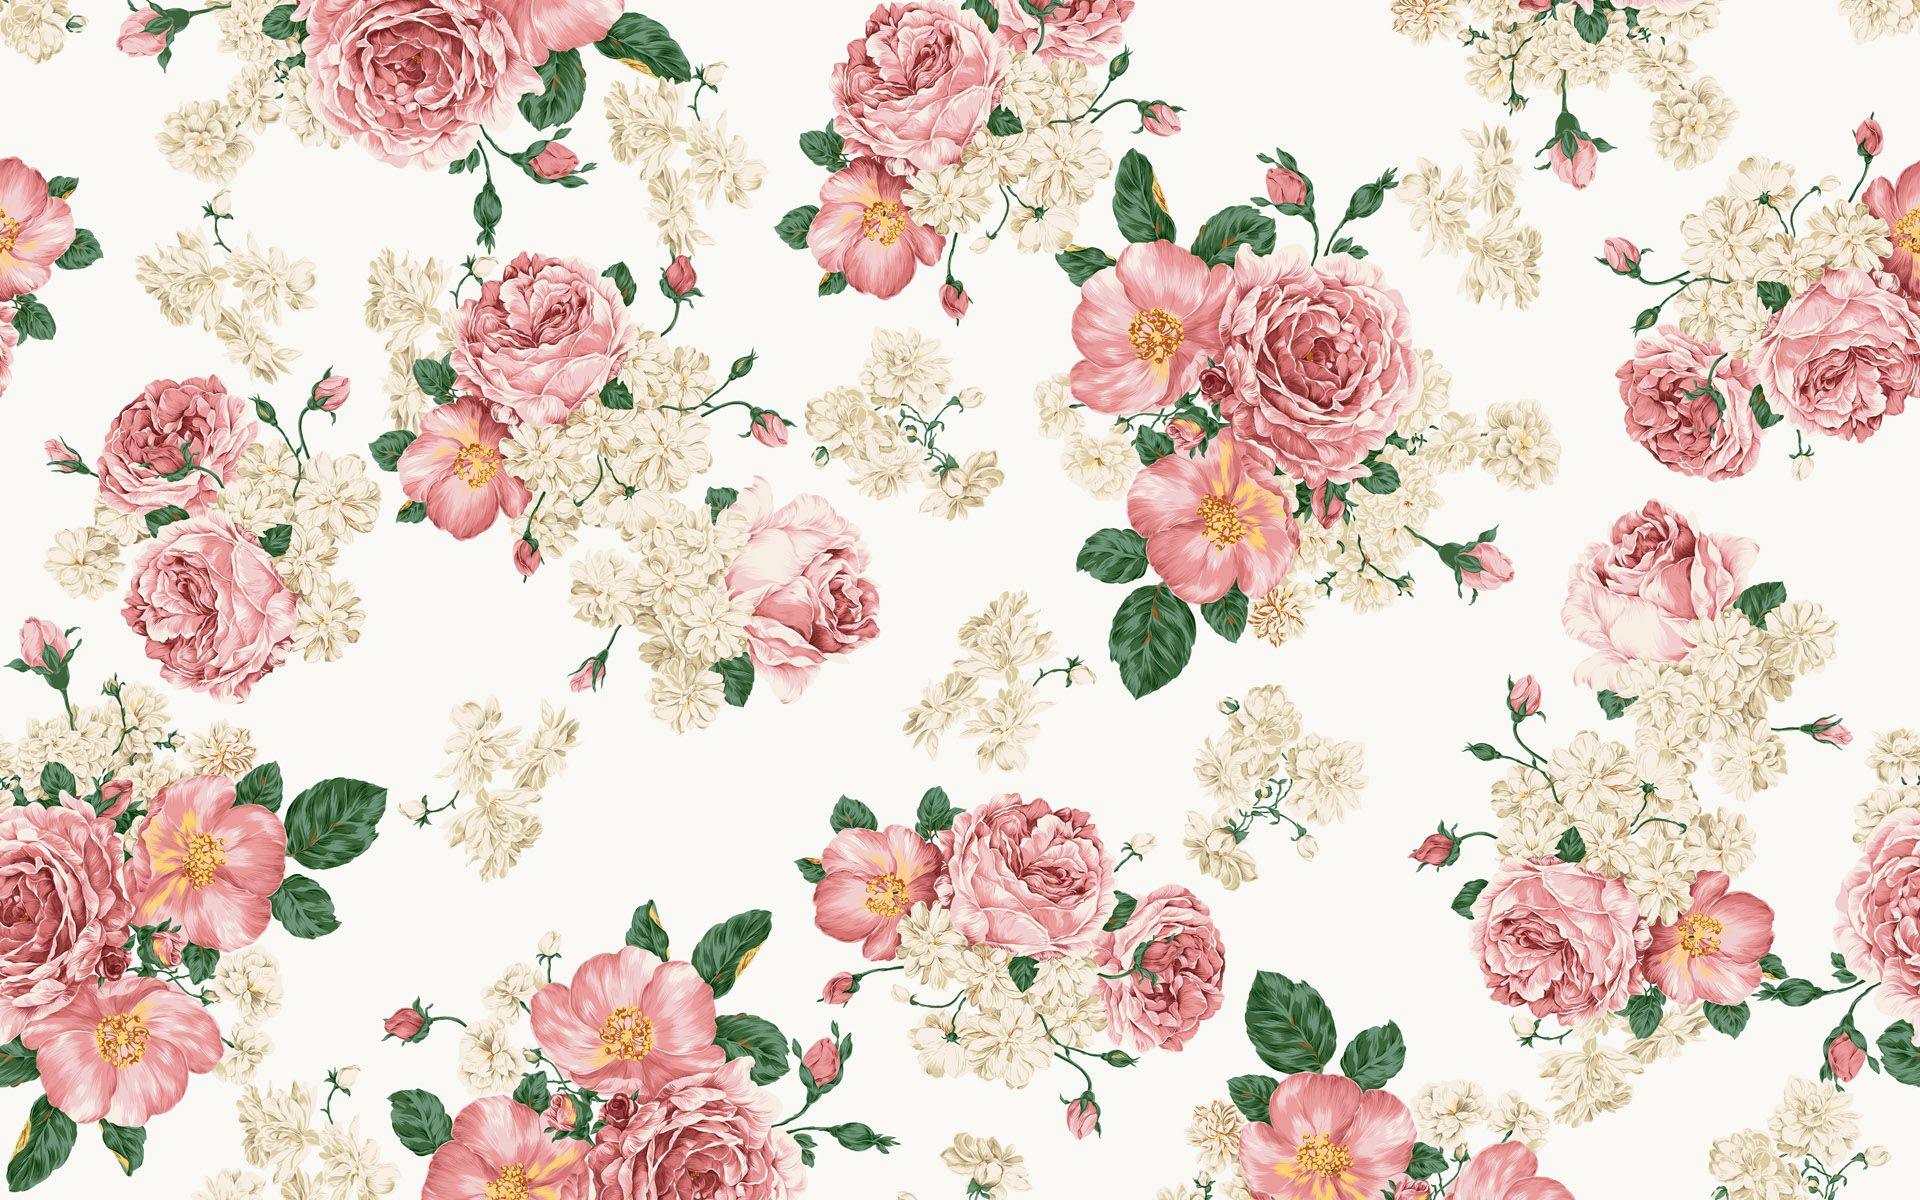 Flower Pattern Design Wallpaper High Resolution with HD